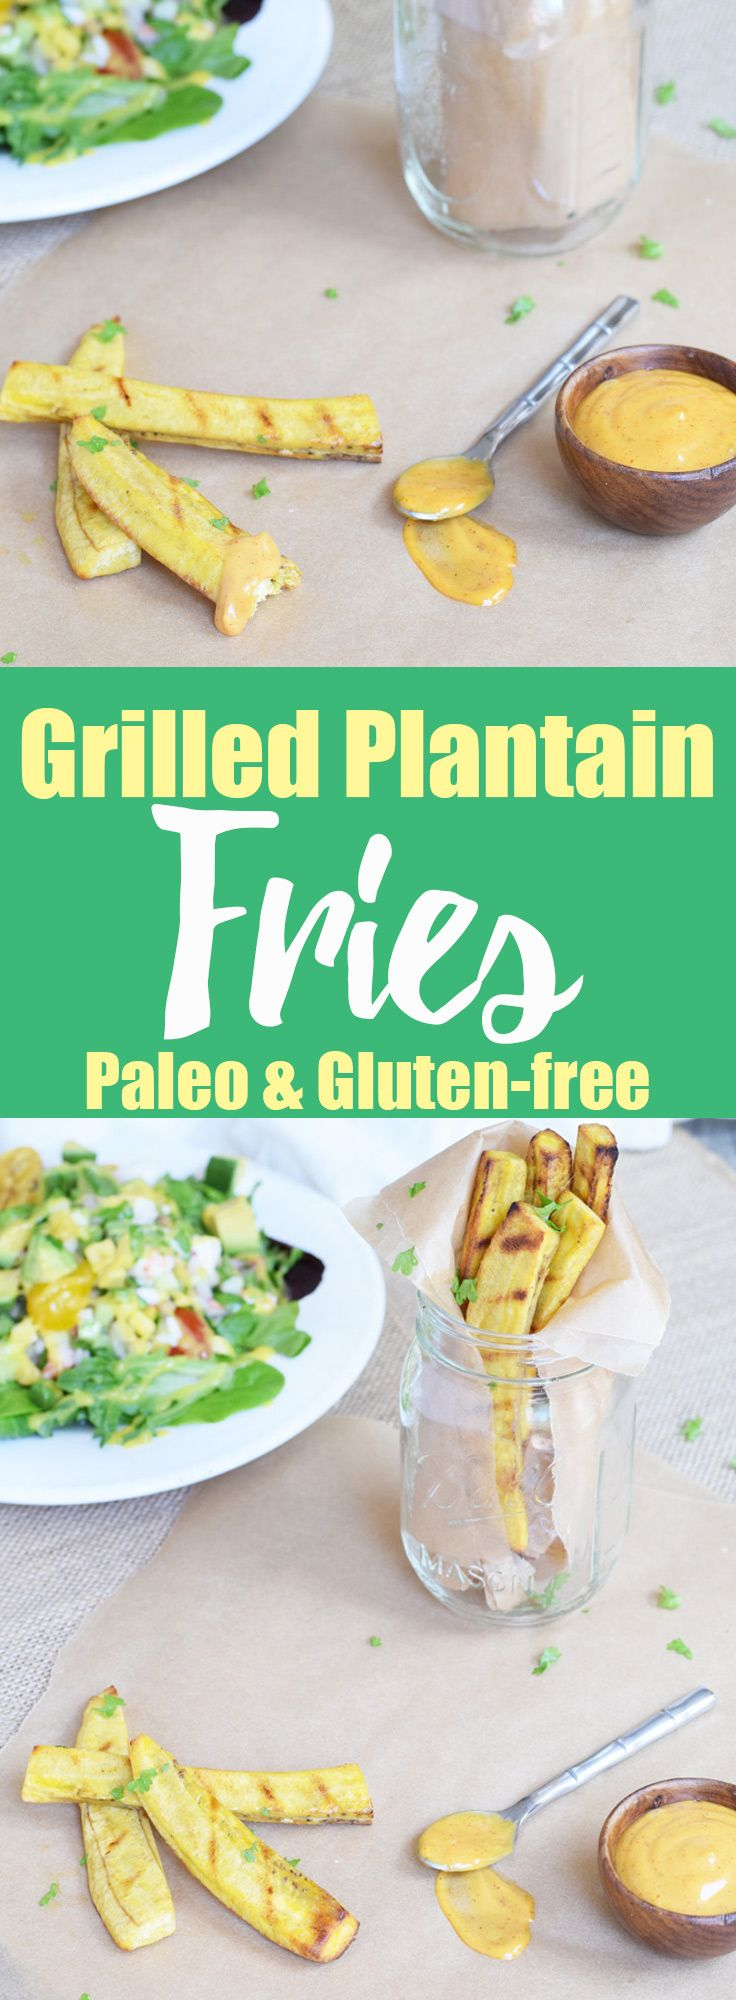 Grilled Plantain Fries from Living Loving Paleo!   paleo, gluten-free &…